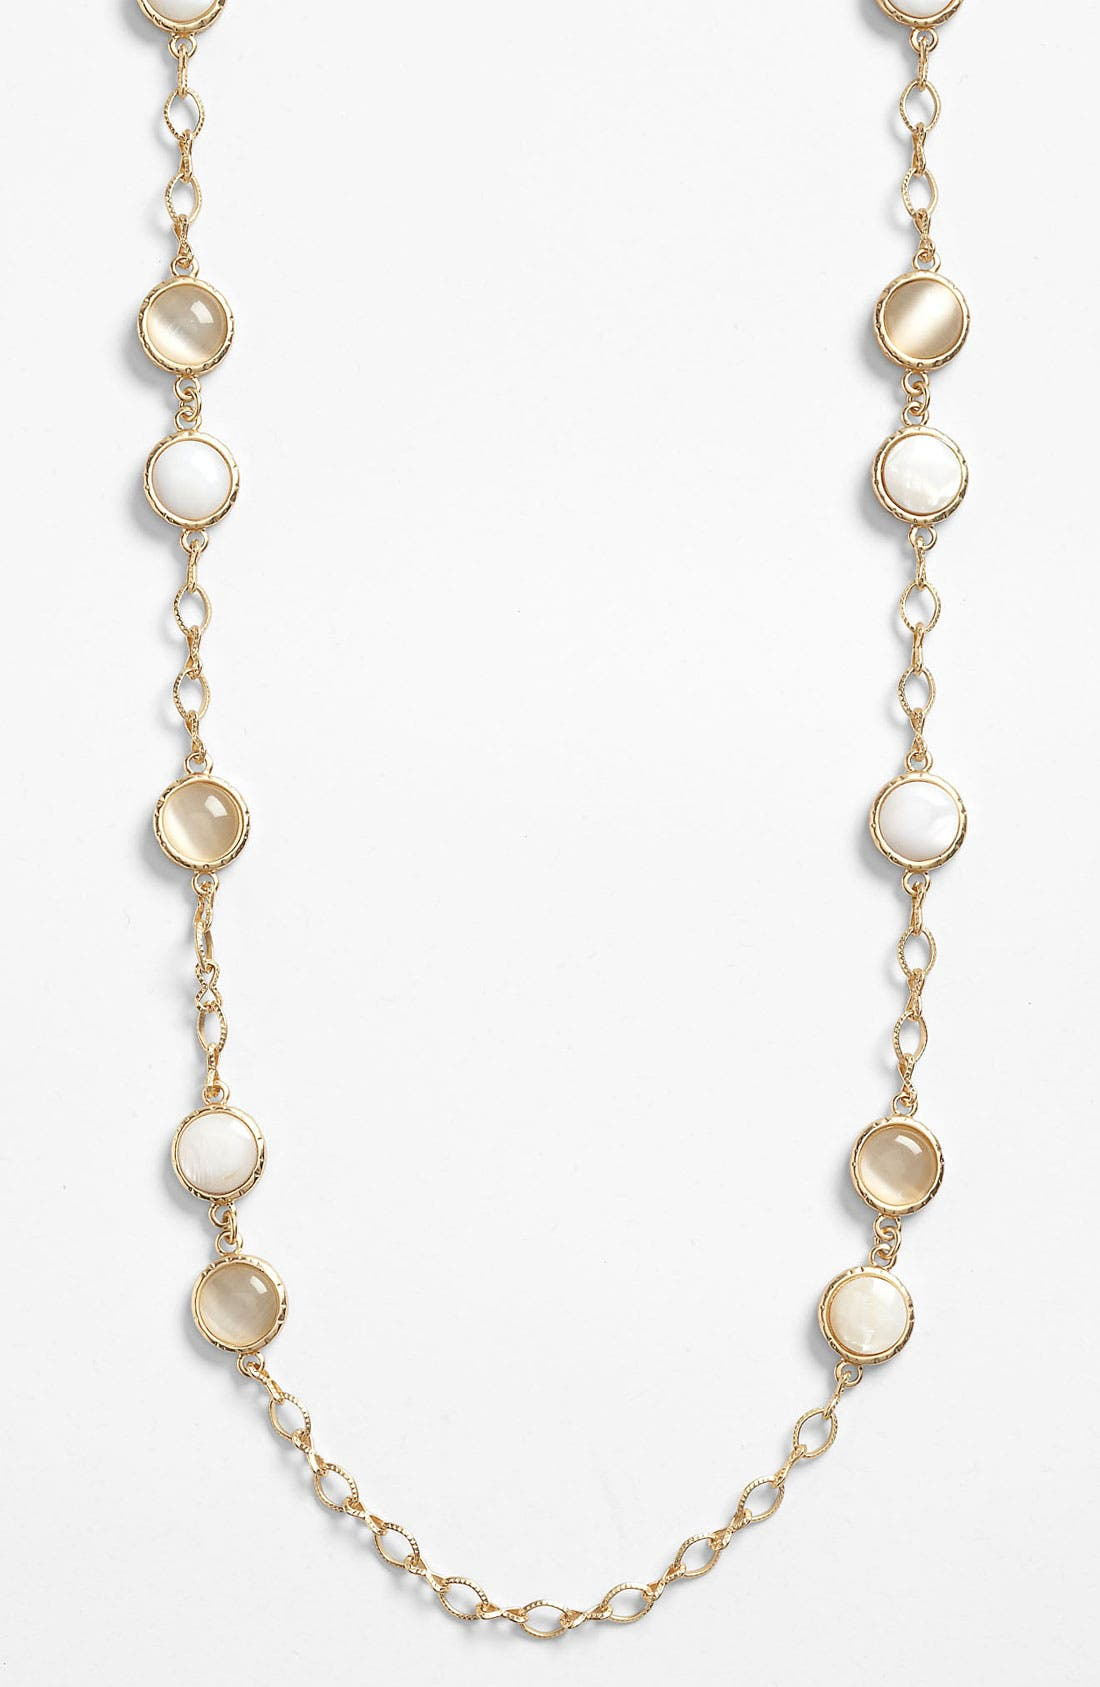 Main Image - Nordstrom 'Santorini' Long Station Necklace